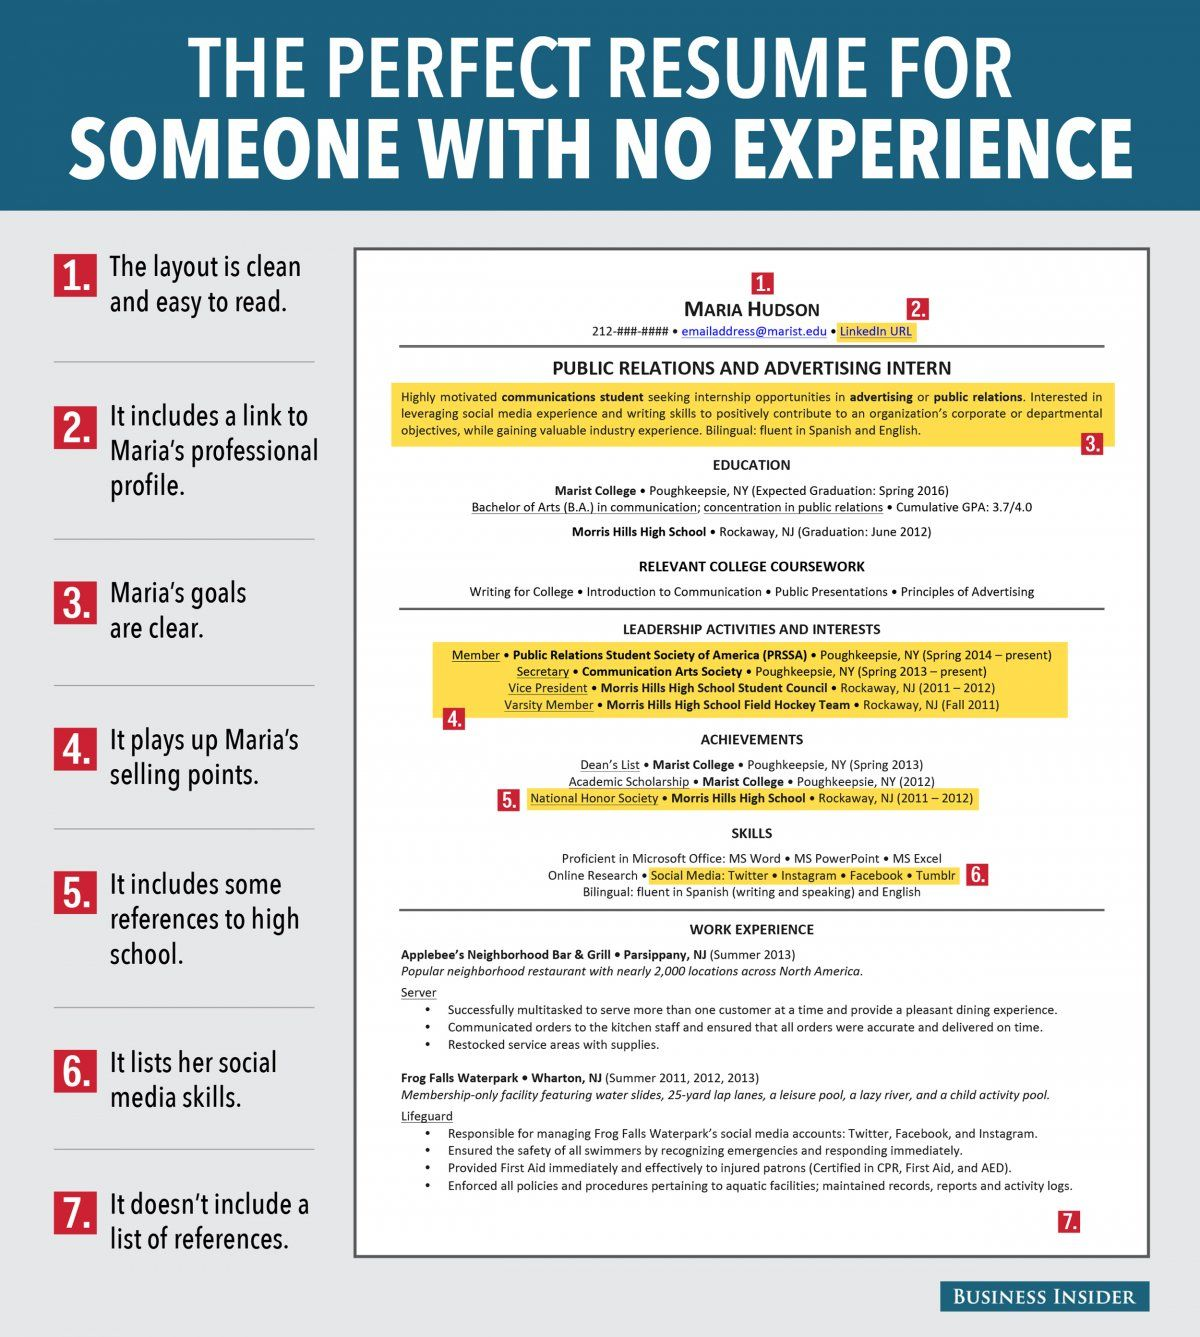 7 Reasons This Is An Excellent Resume For Someone With No ...